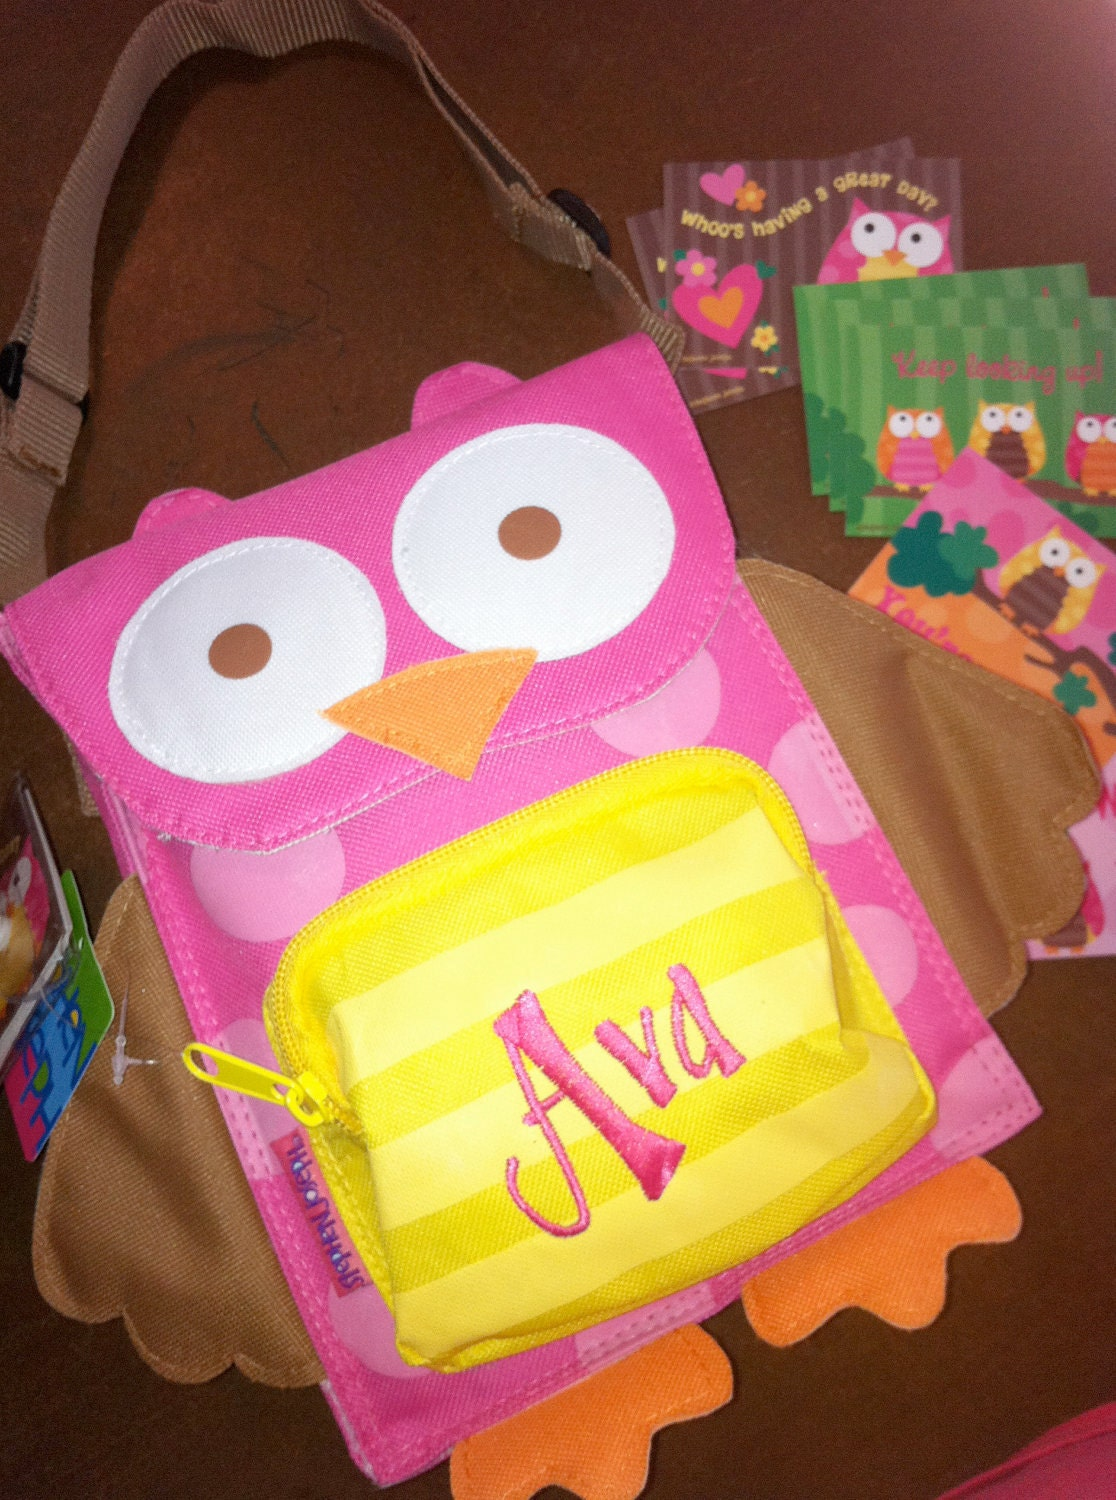 Personlized lunch bags